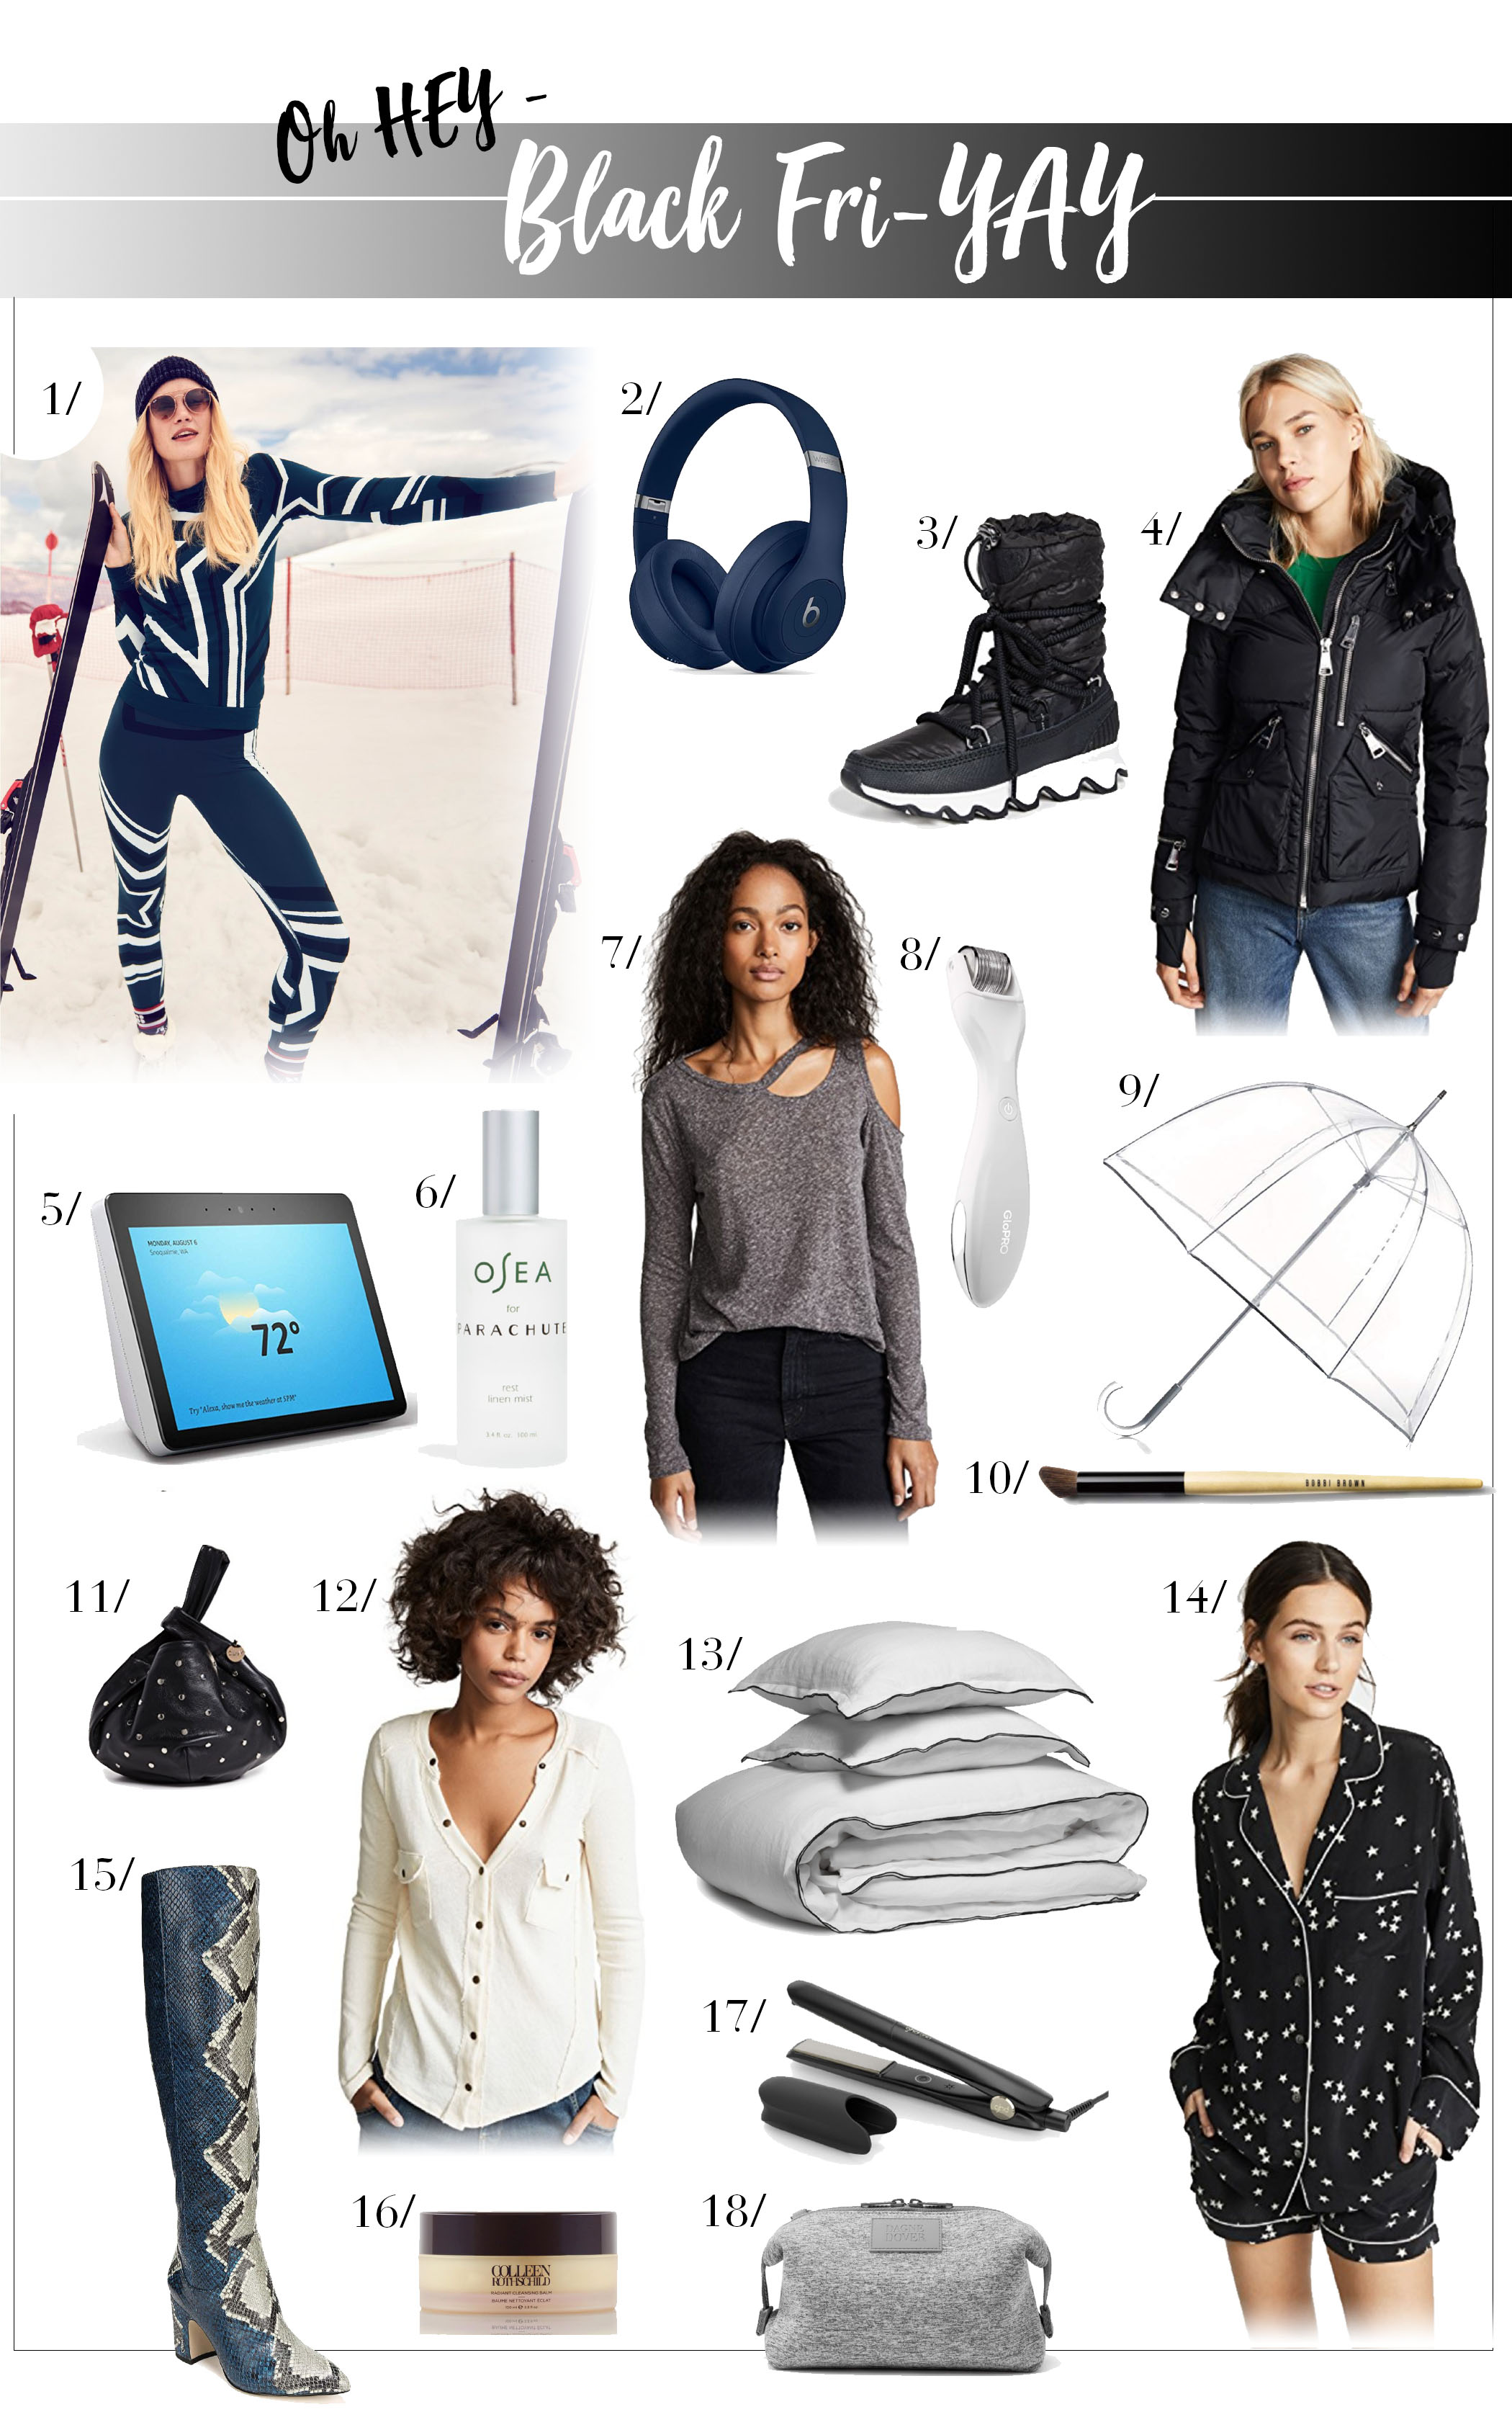 Solid Black Friday sales = great gift ideas, plus deals perfect for Mama's wishlist...Parachute sheets on sale, silk PJs, travel gear, bags & boots...yes!